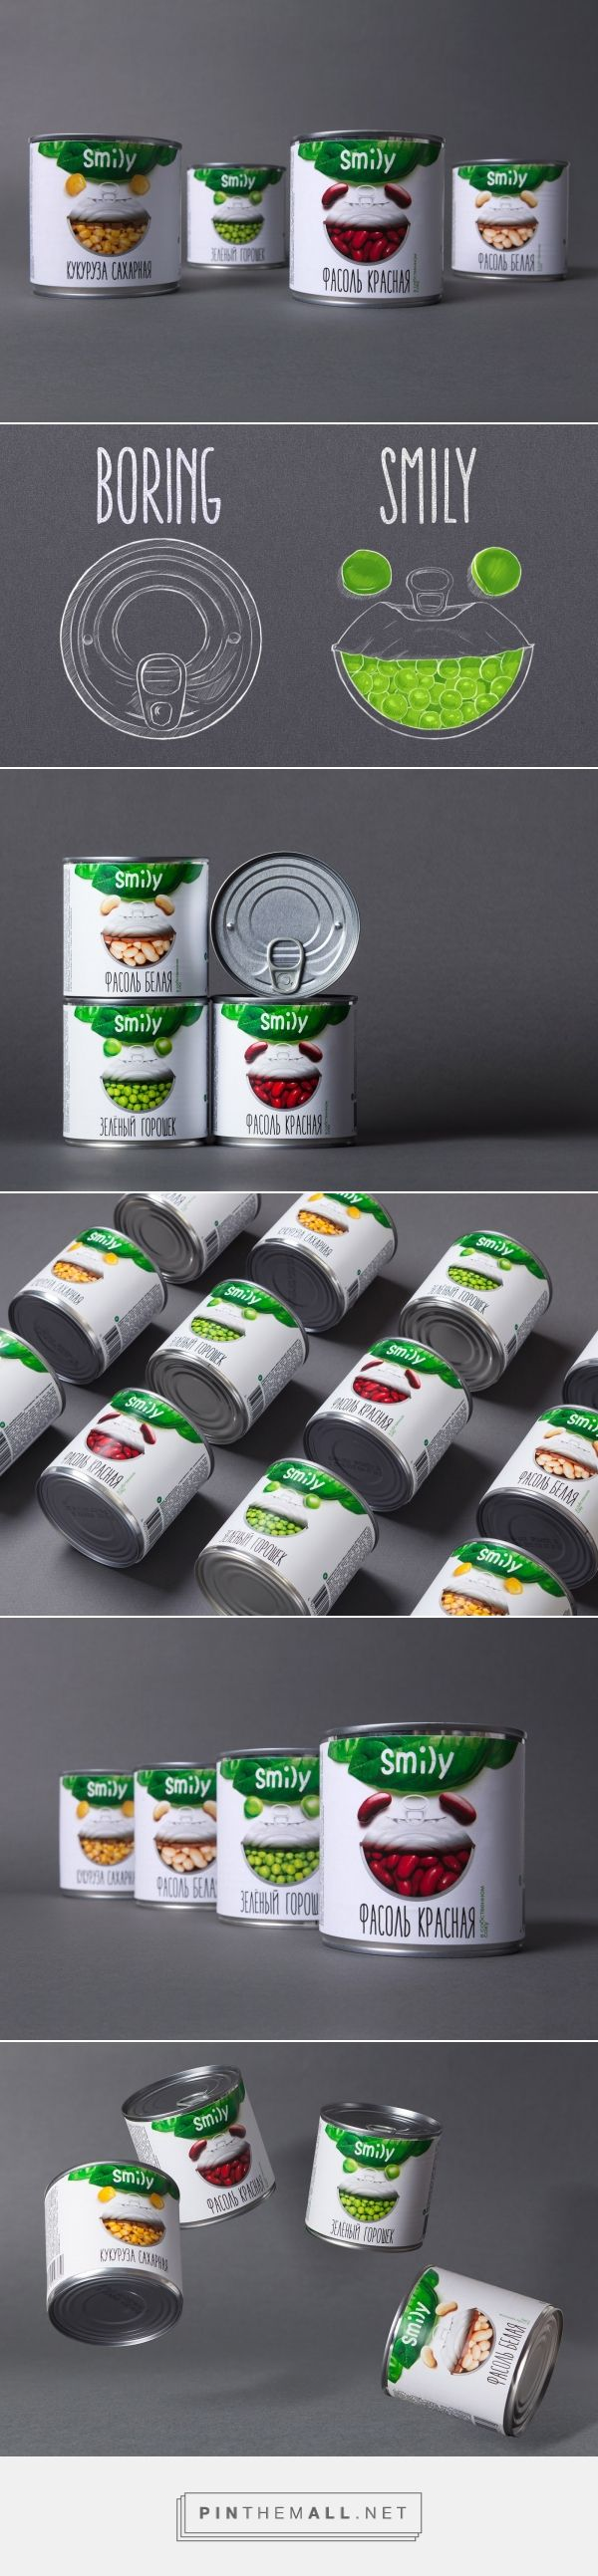 Smily Canned Goods packaging design by Gordost (Russia) - http://www.packagingoftheworld.com/2016/09/smily-canned-goods-positive-nature.html